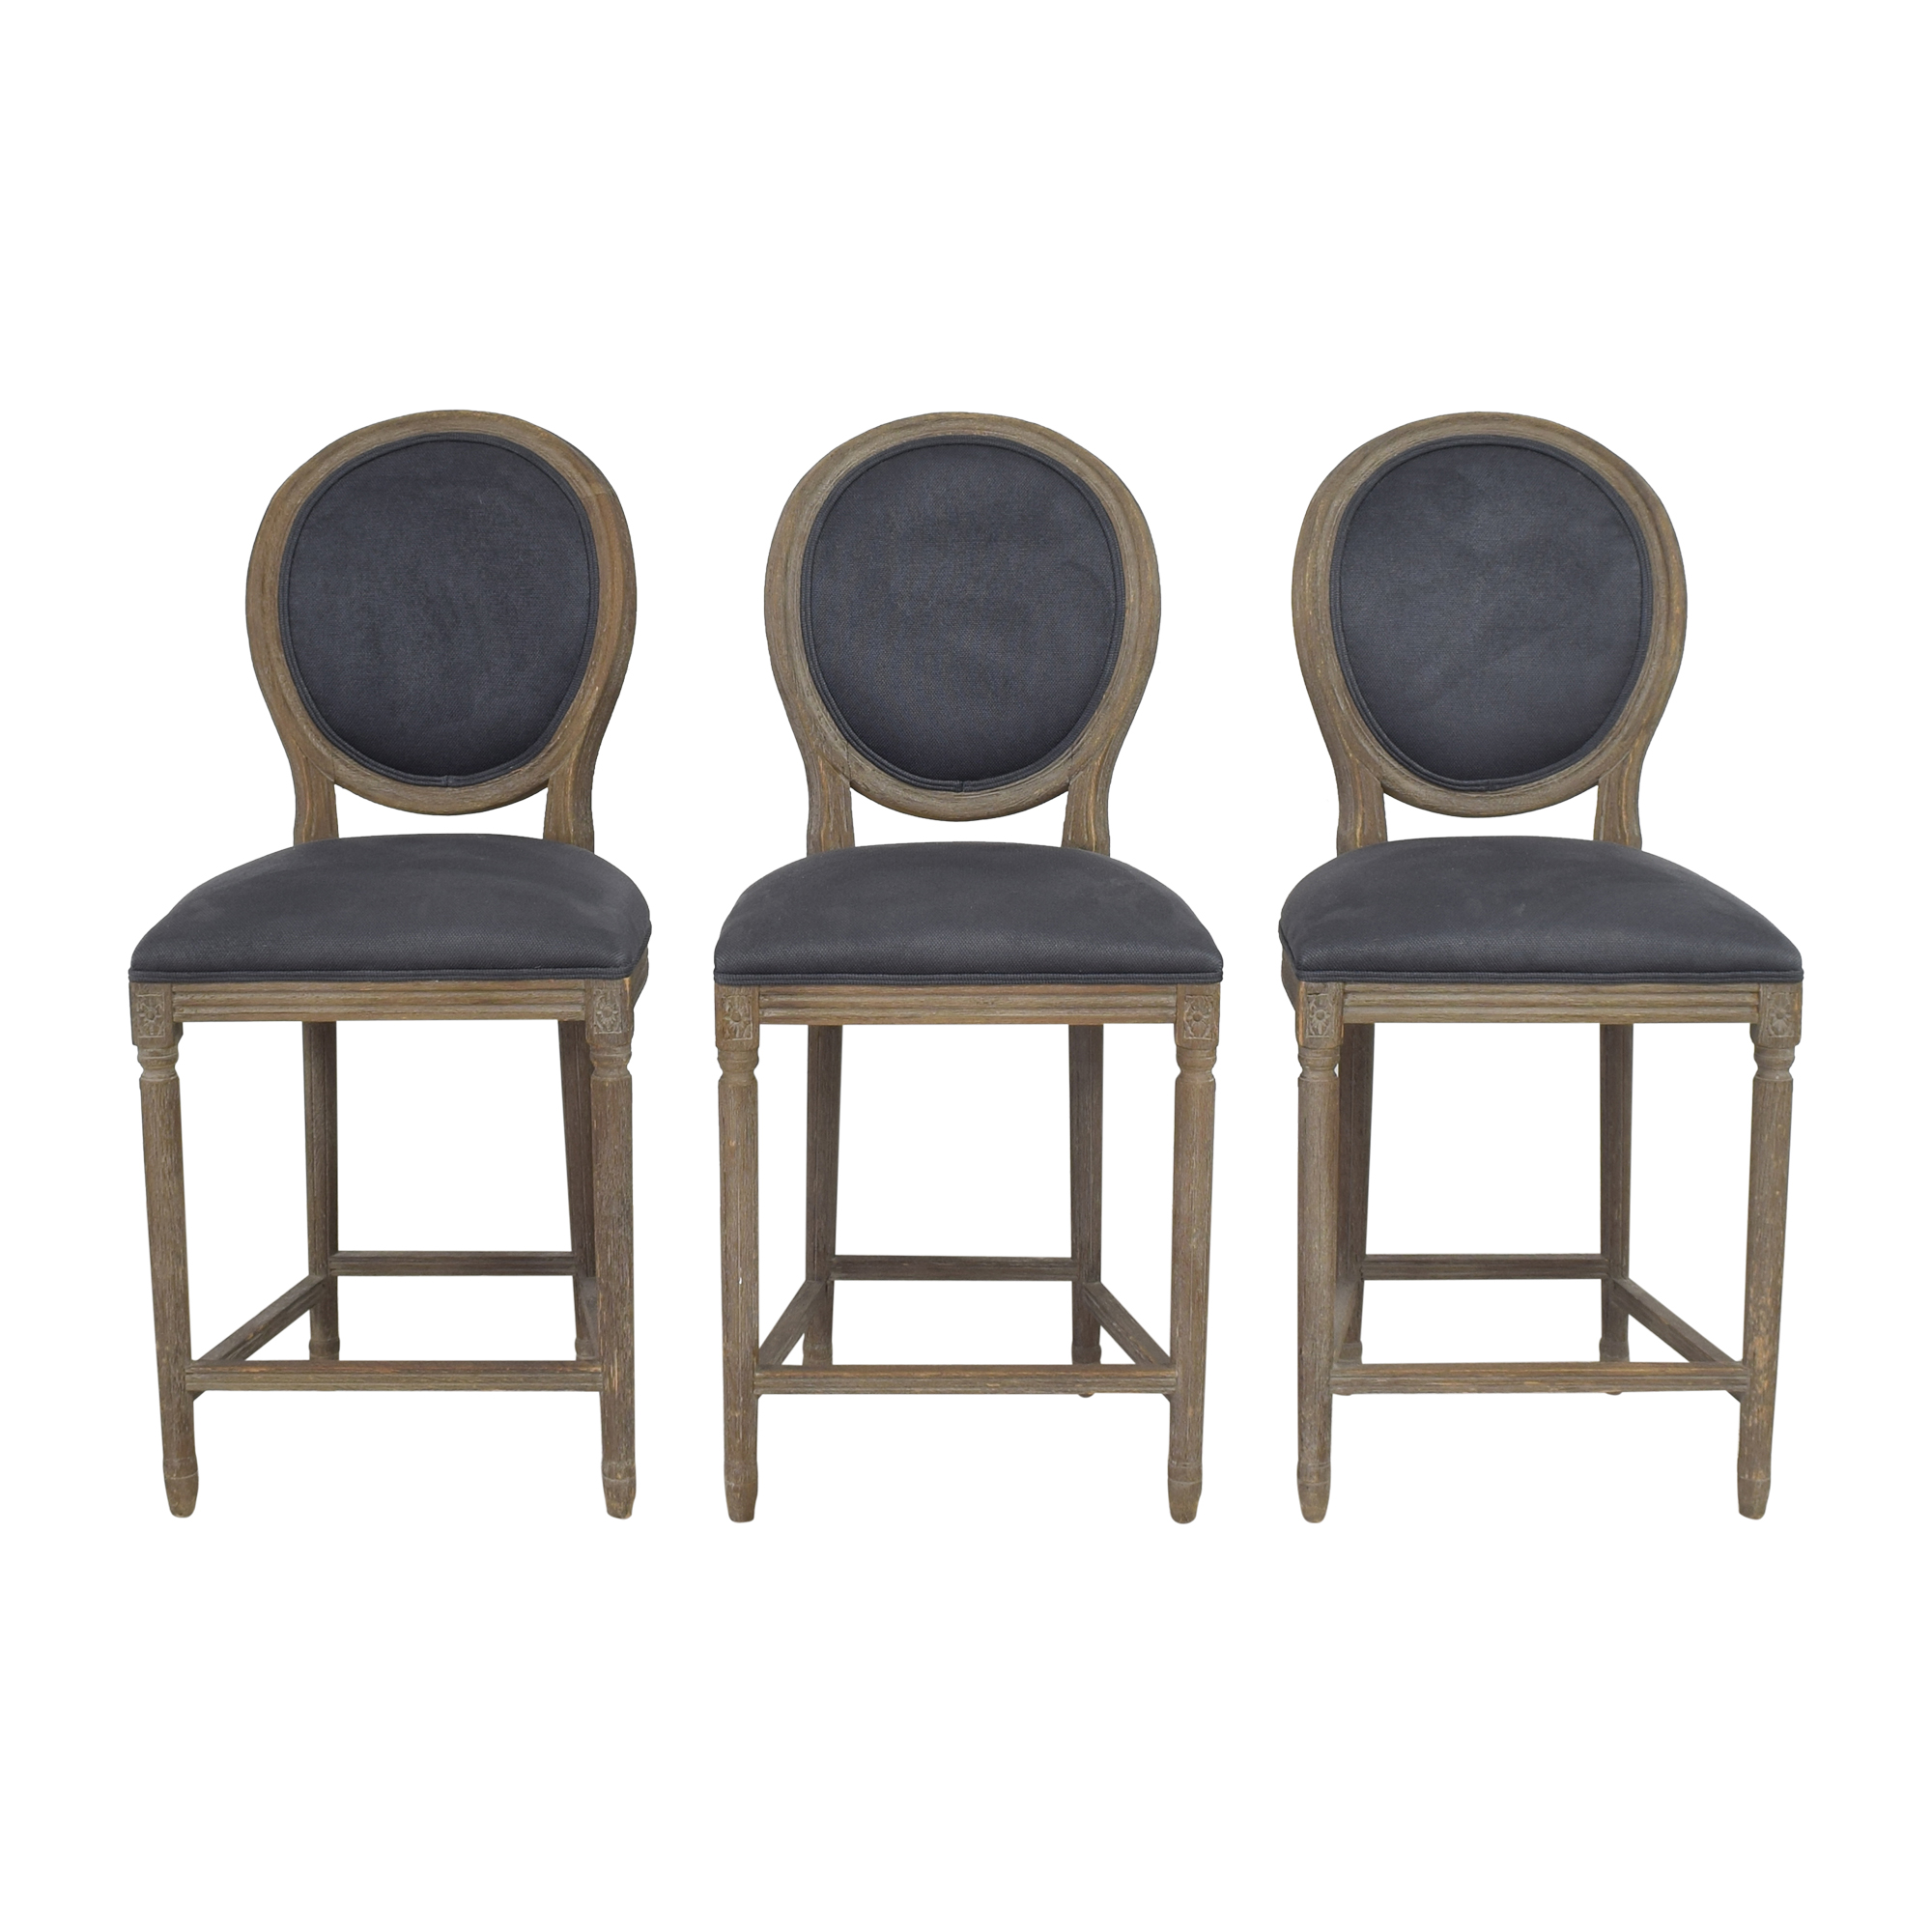 buy Restoration Hardware Restoration Hardware Vintage French Round Counter Stools online